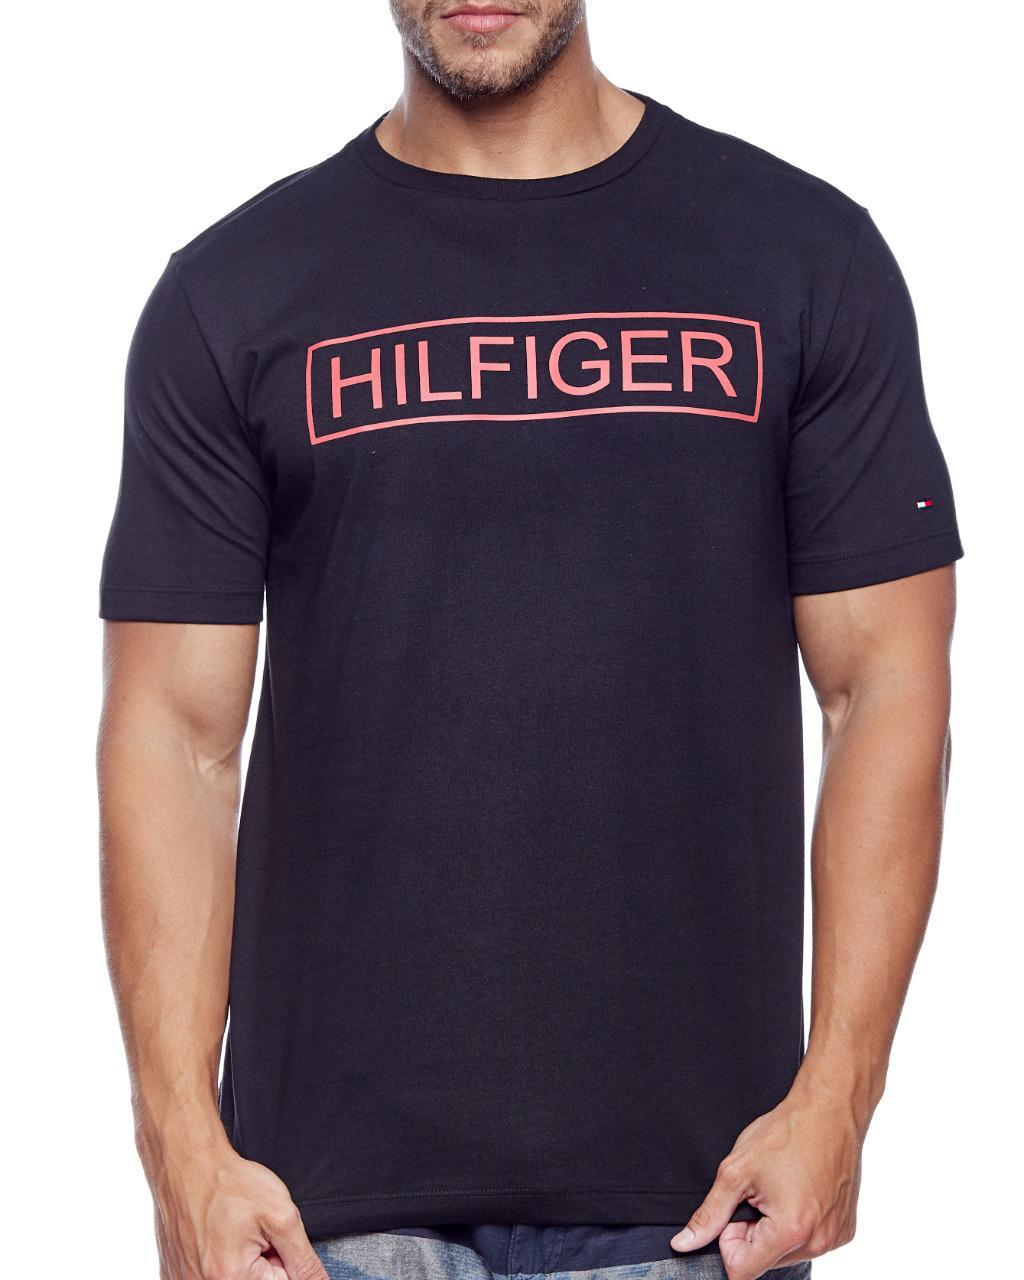 Camiseta Tommy Hilfiger Masculina Custom Fit Lettering Pure Preto